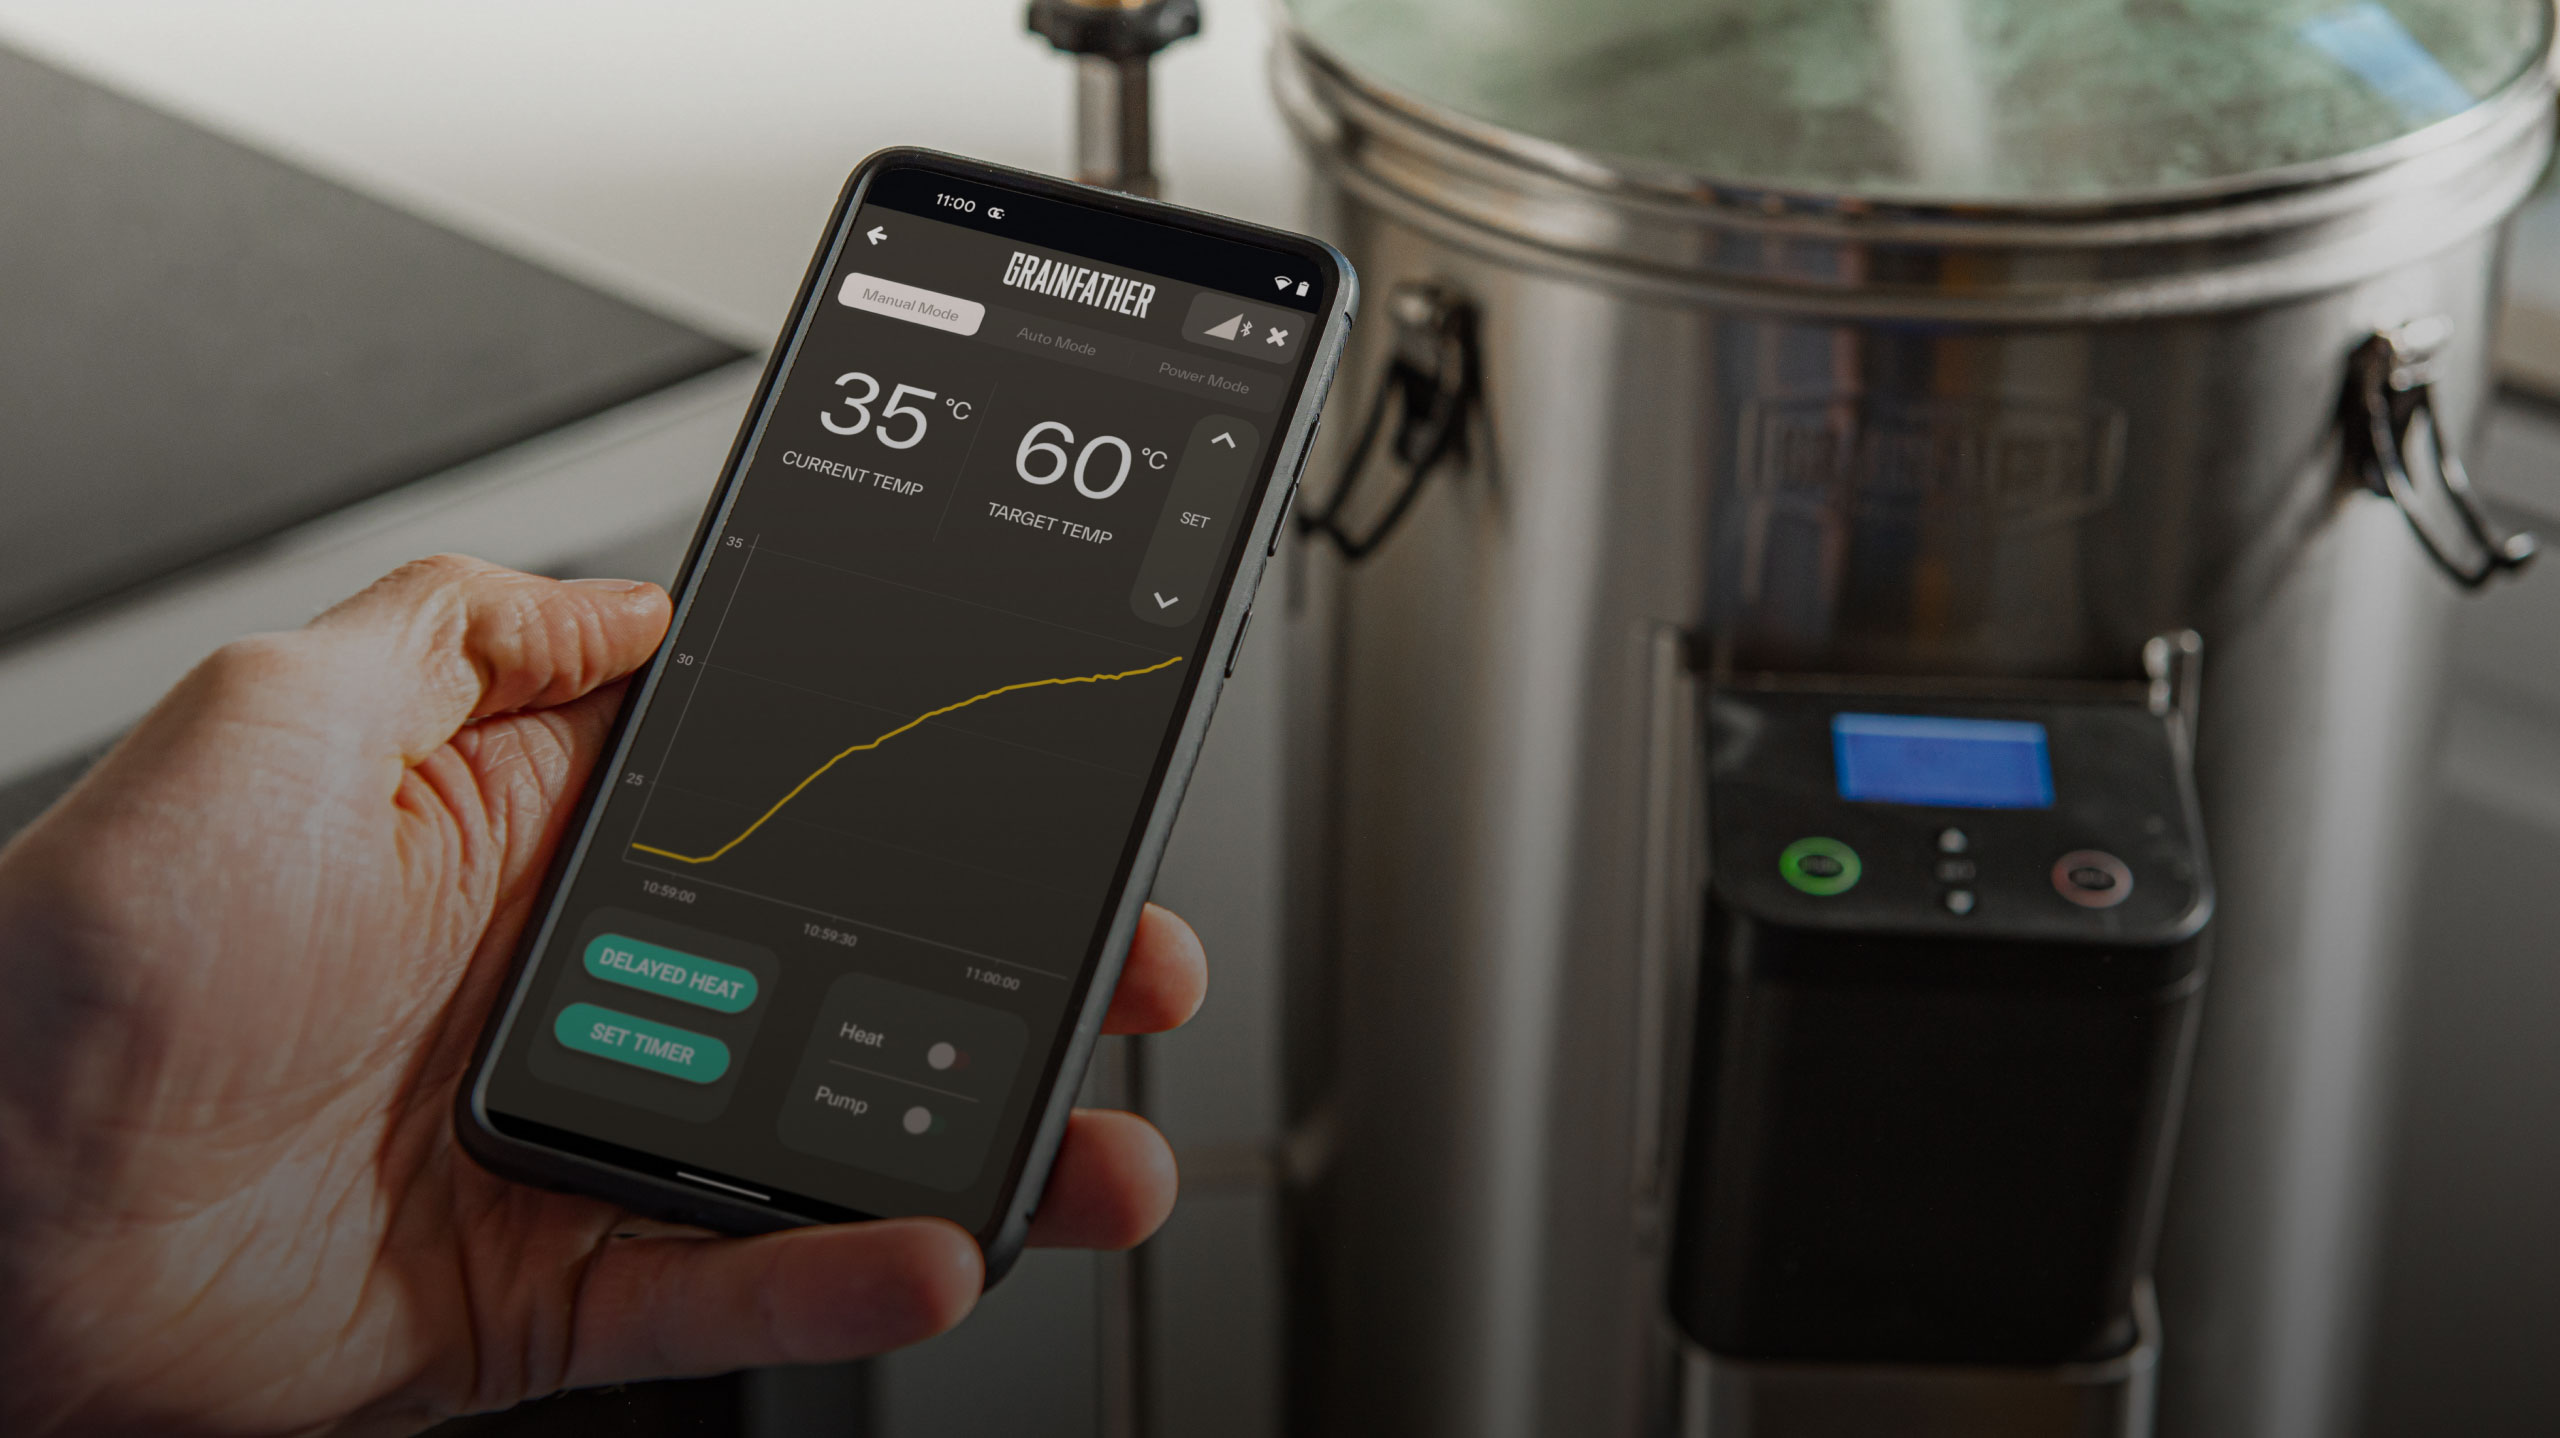 Grainfather Brewing Equipment Controlled by the Free Mobile App